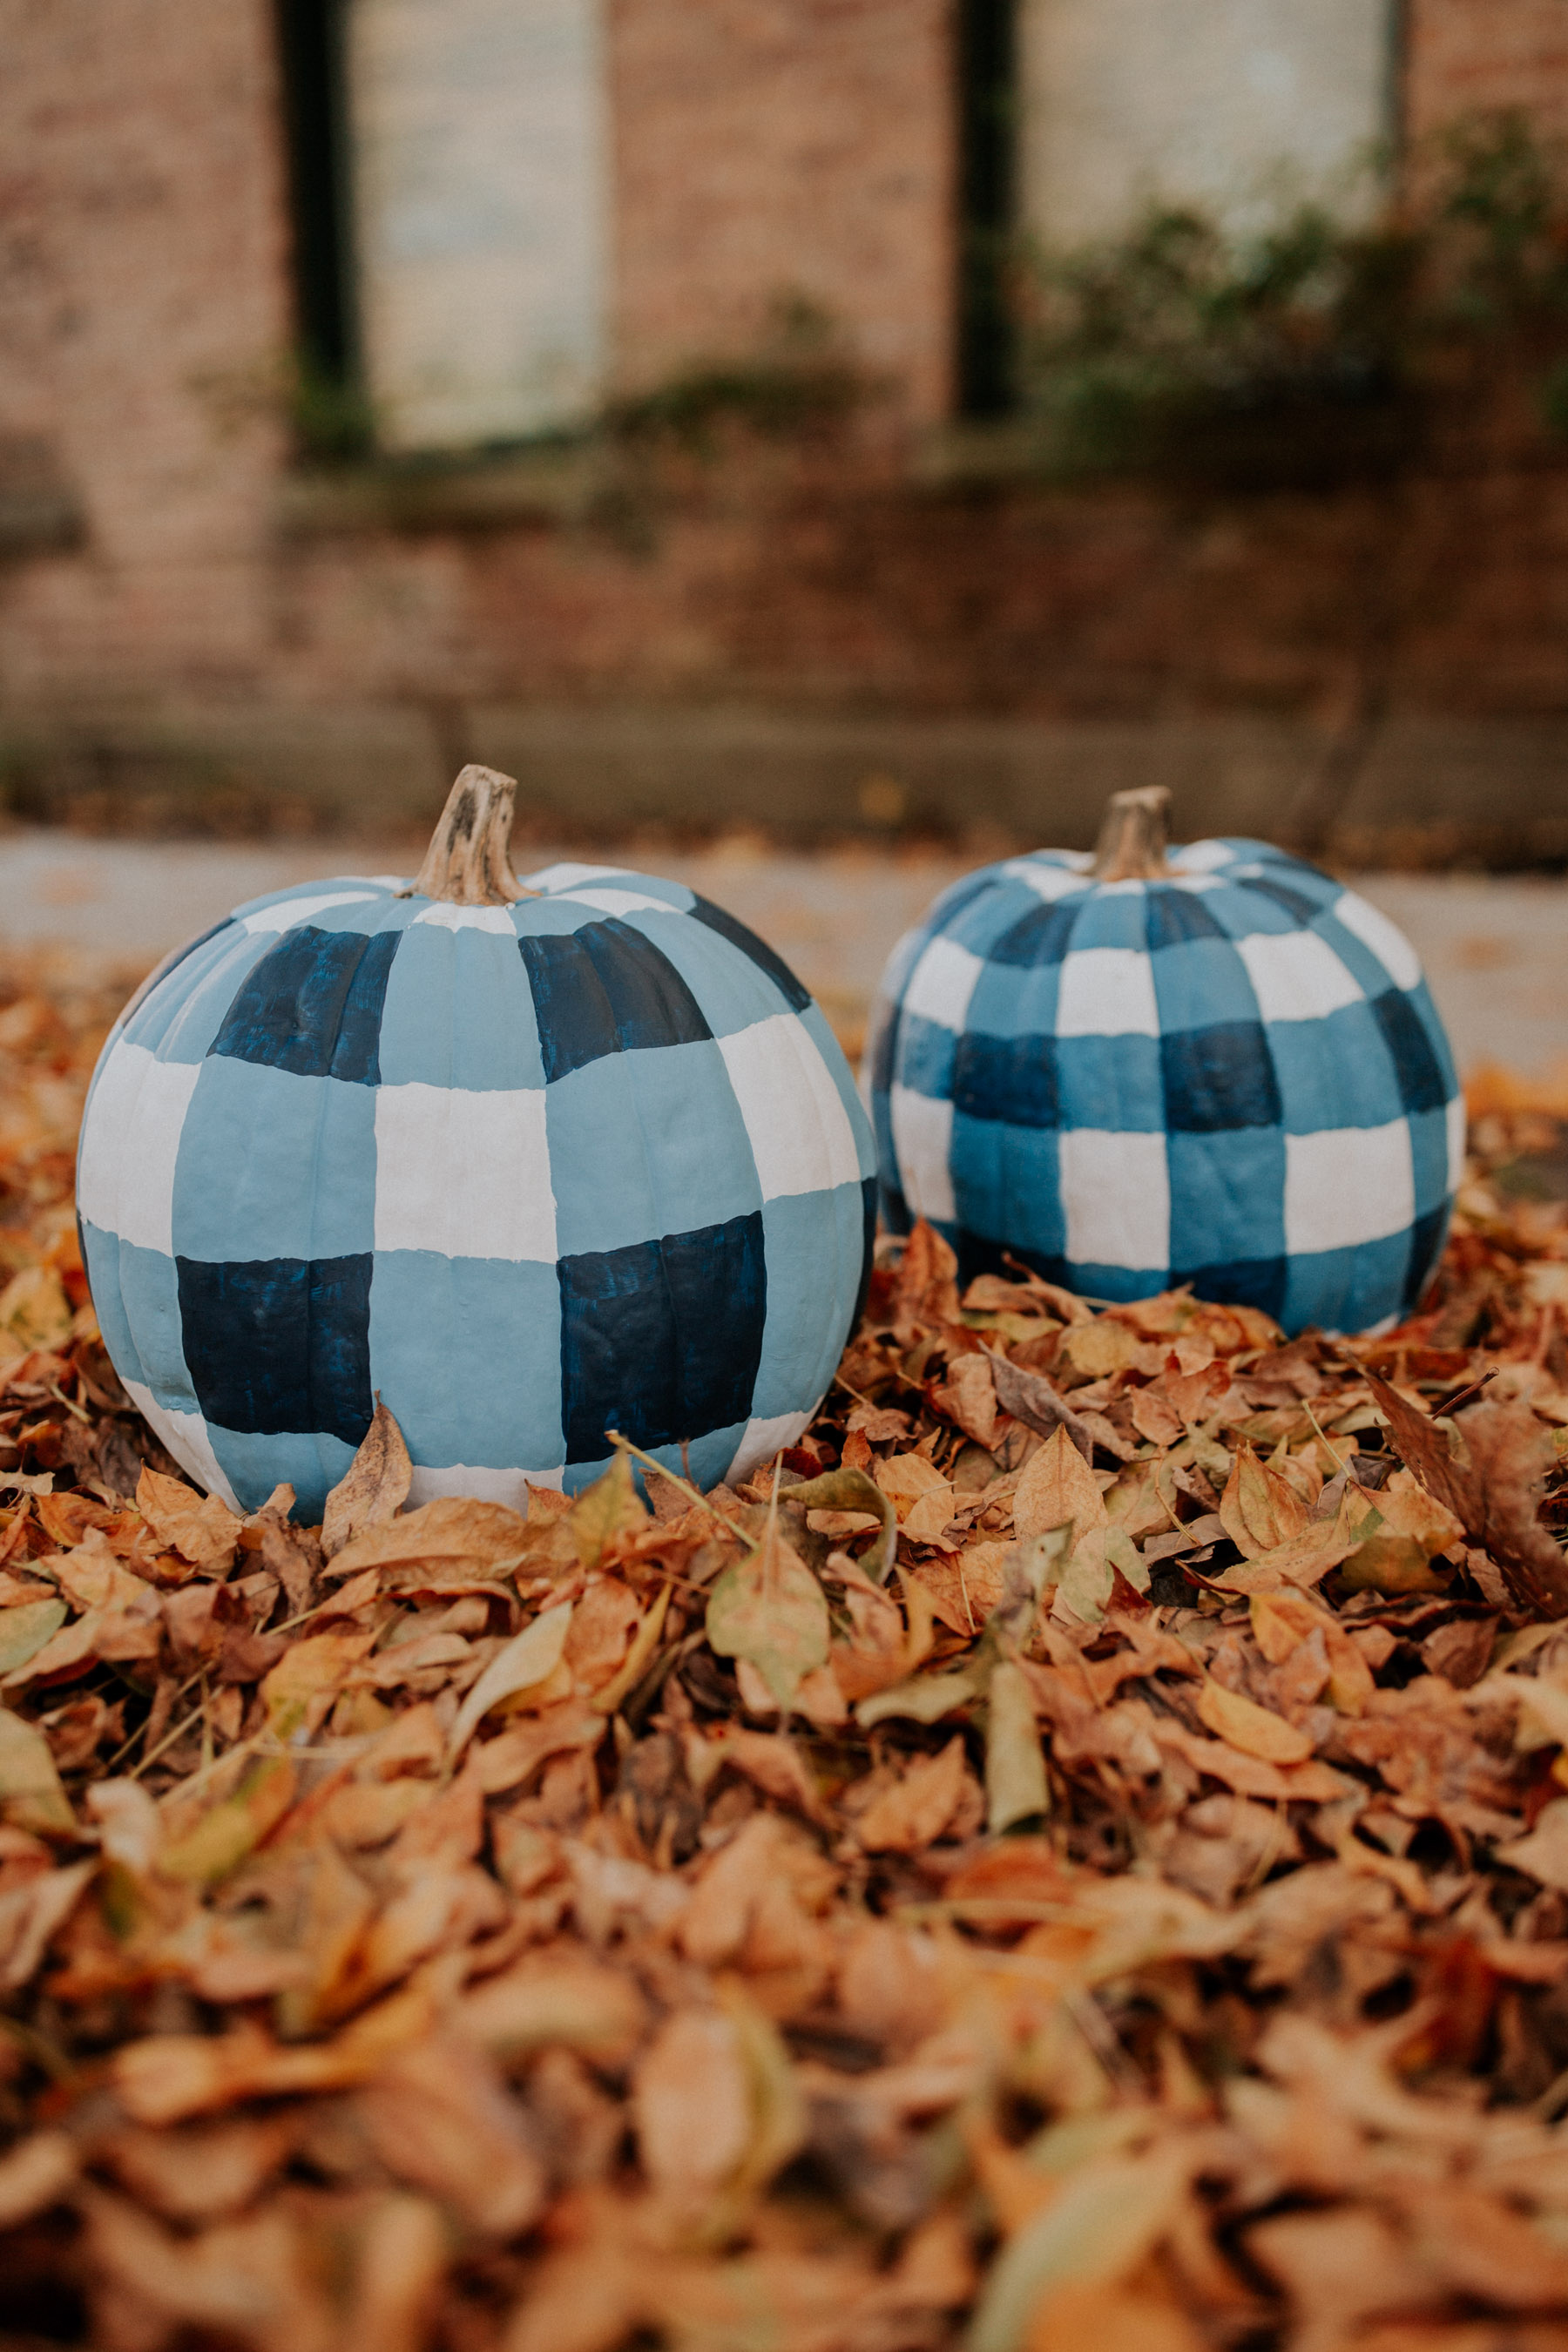 How to Paint Gingham Pumpkins